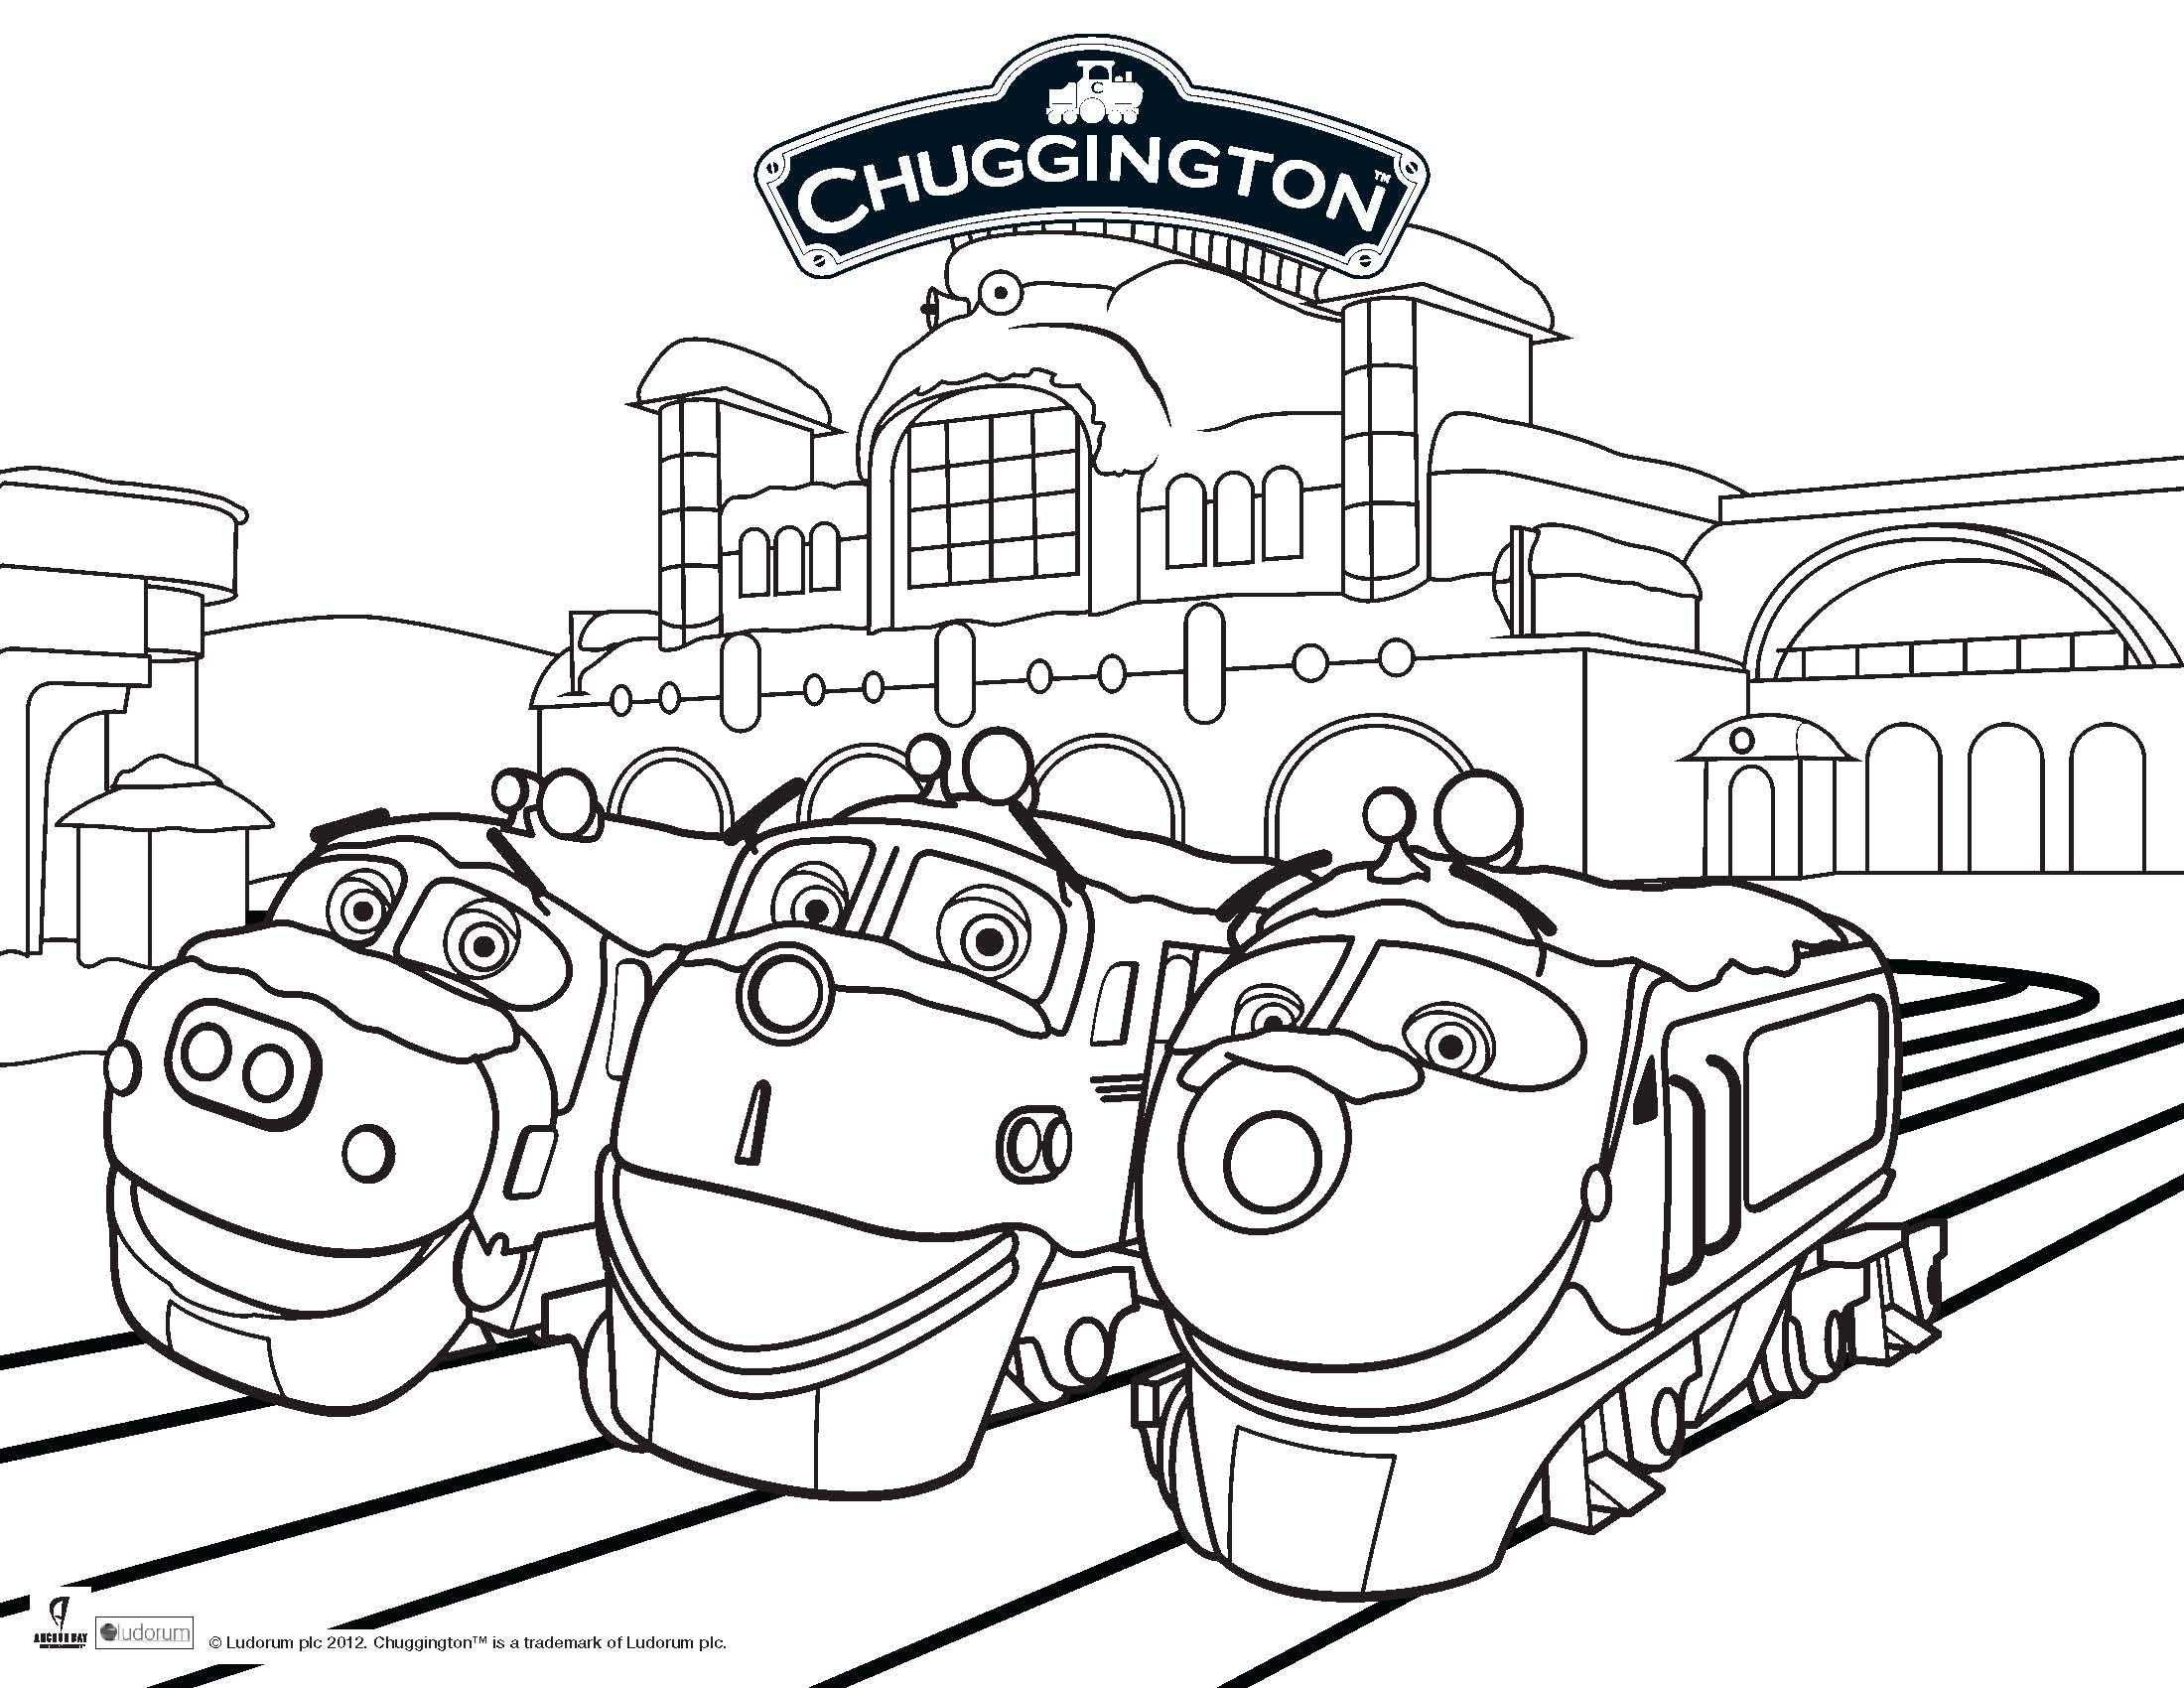 chuggington coloring book pages - photo#3